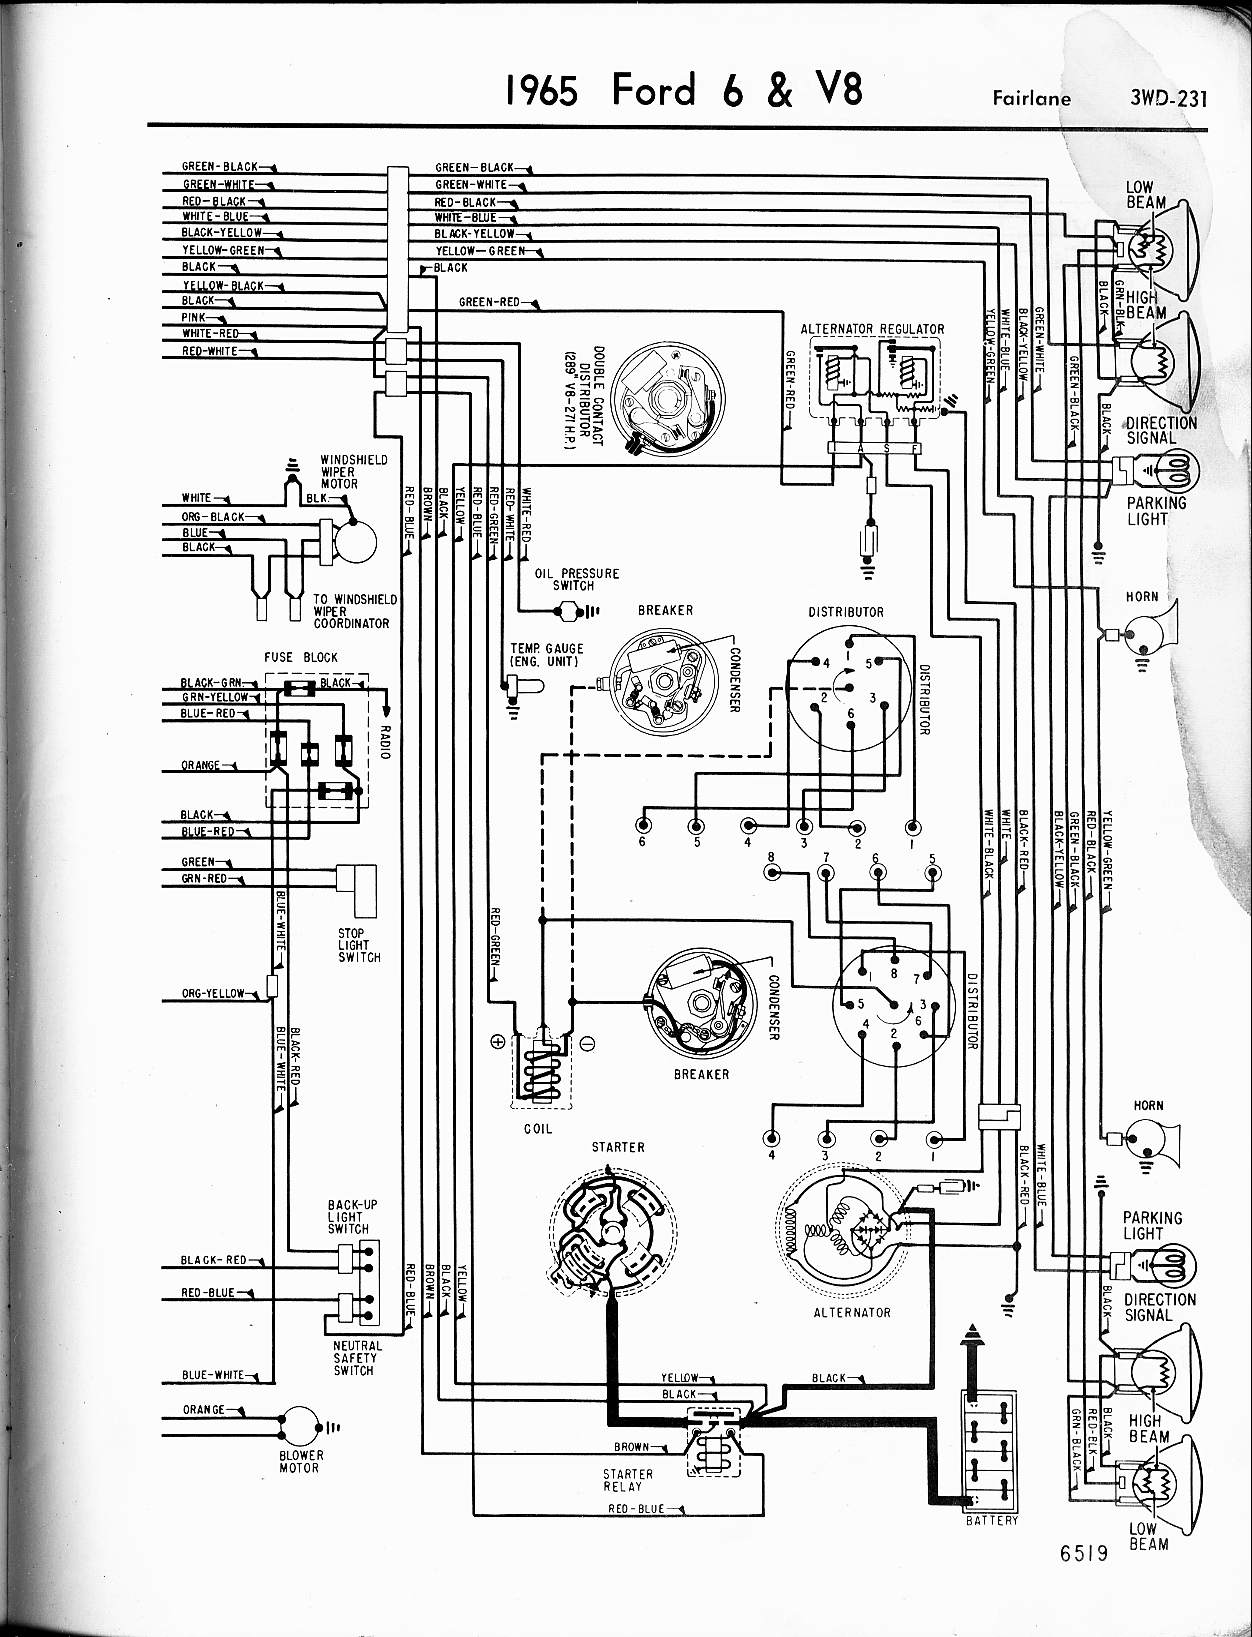 1965 el camino door diagram wiring schematic